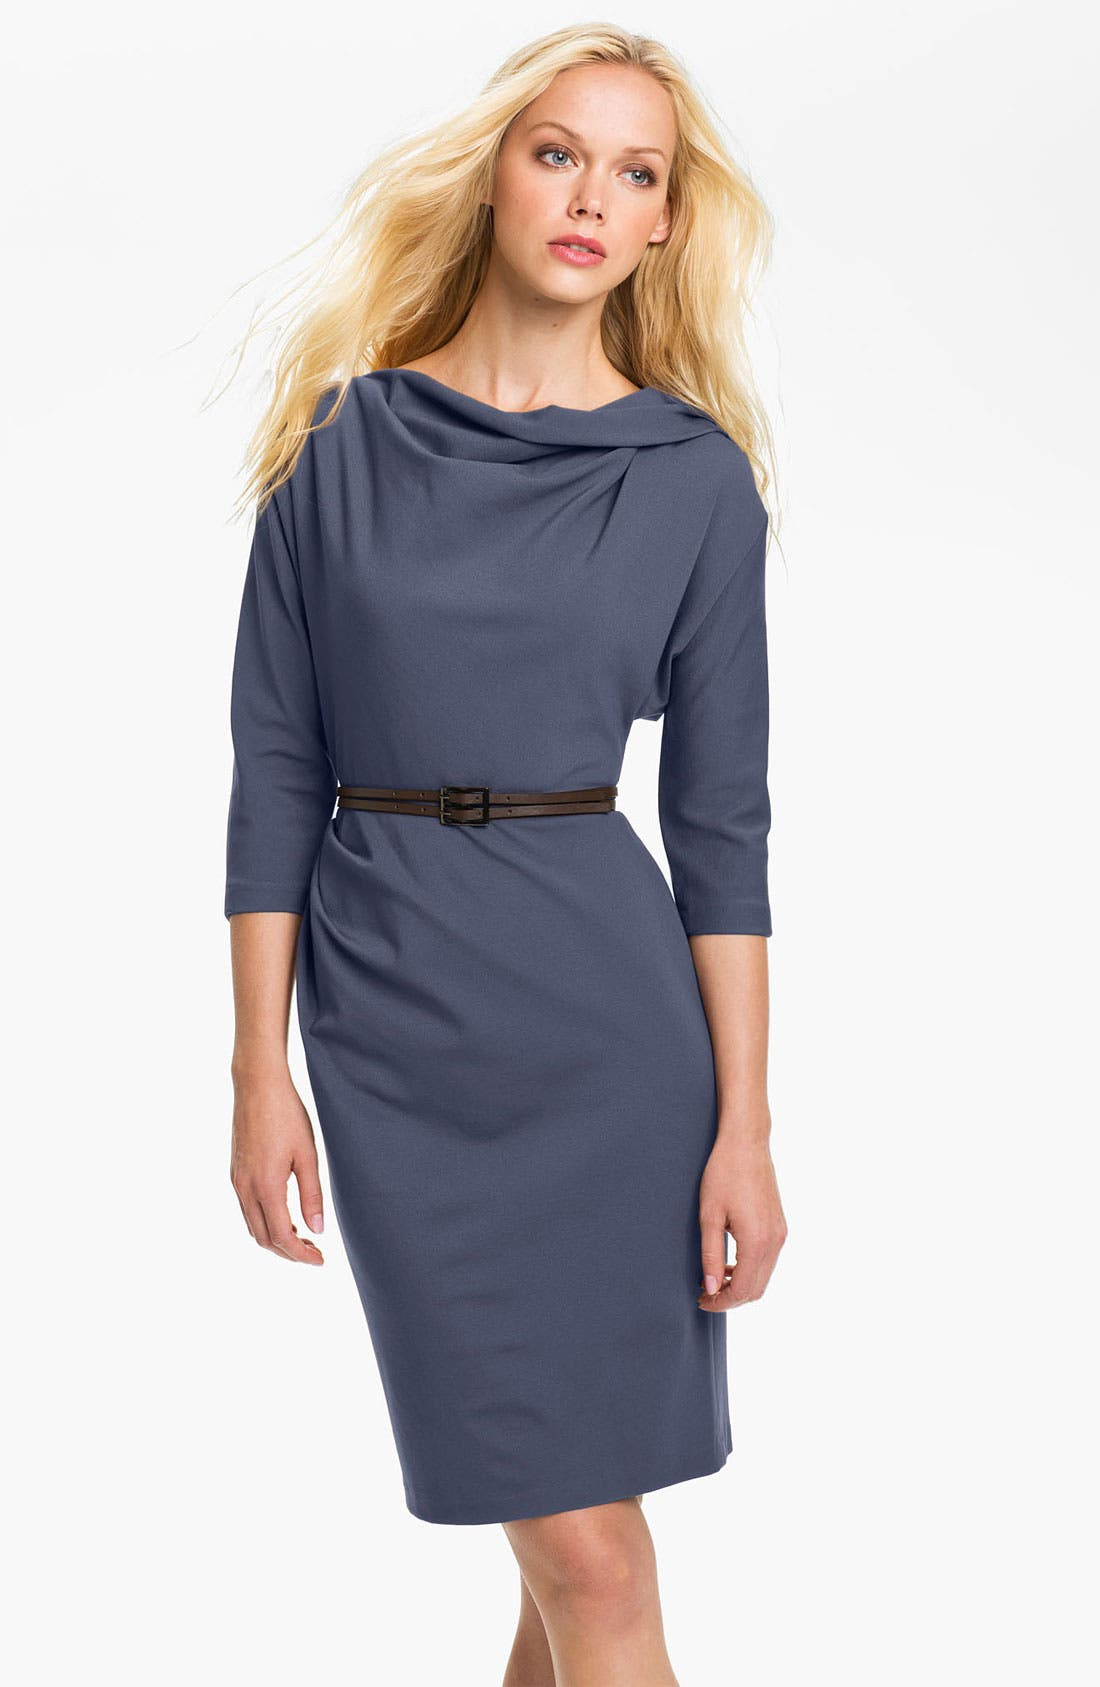 Main Image - Suzi Chin for Maggy Boutique Belted Dolman Sleeve Sheath Dress (Petite)